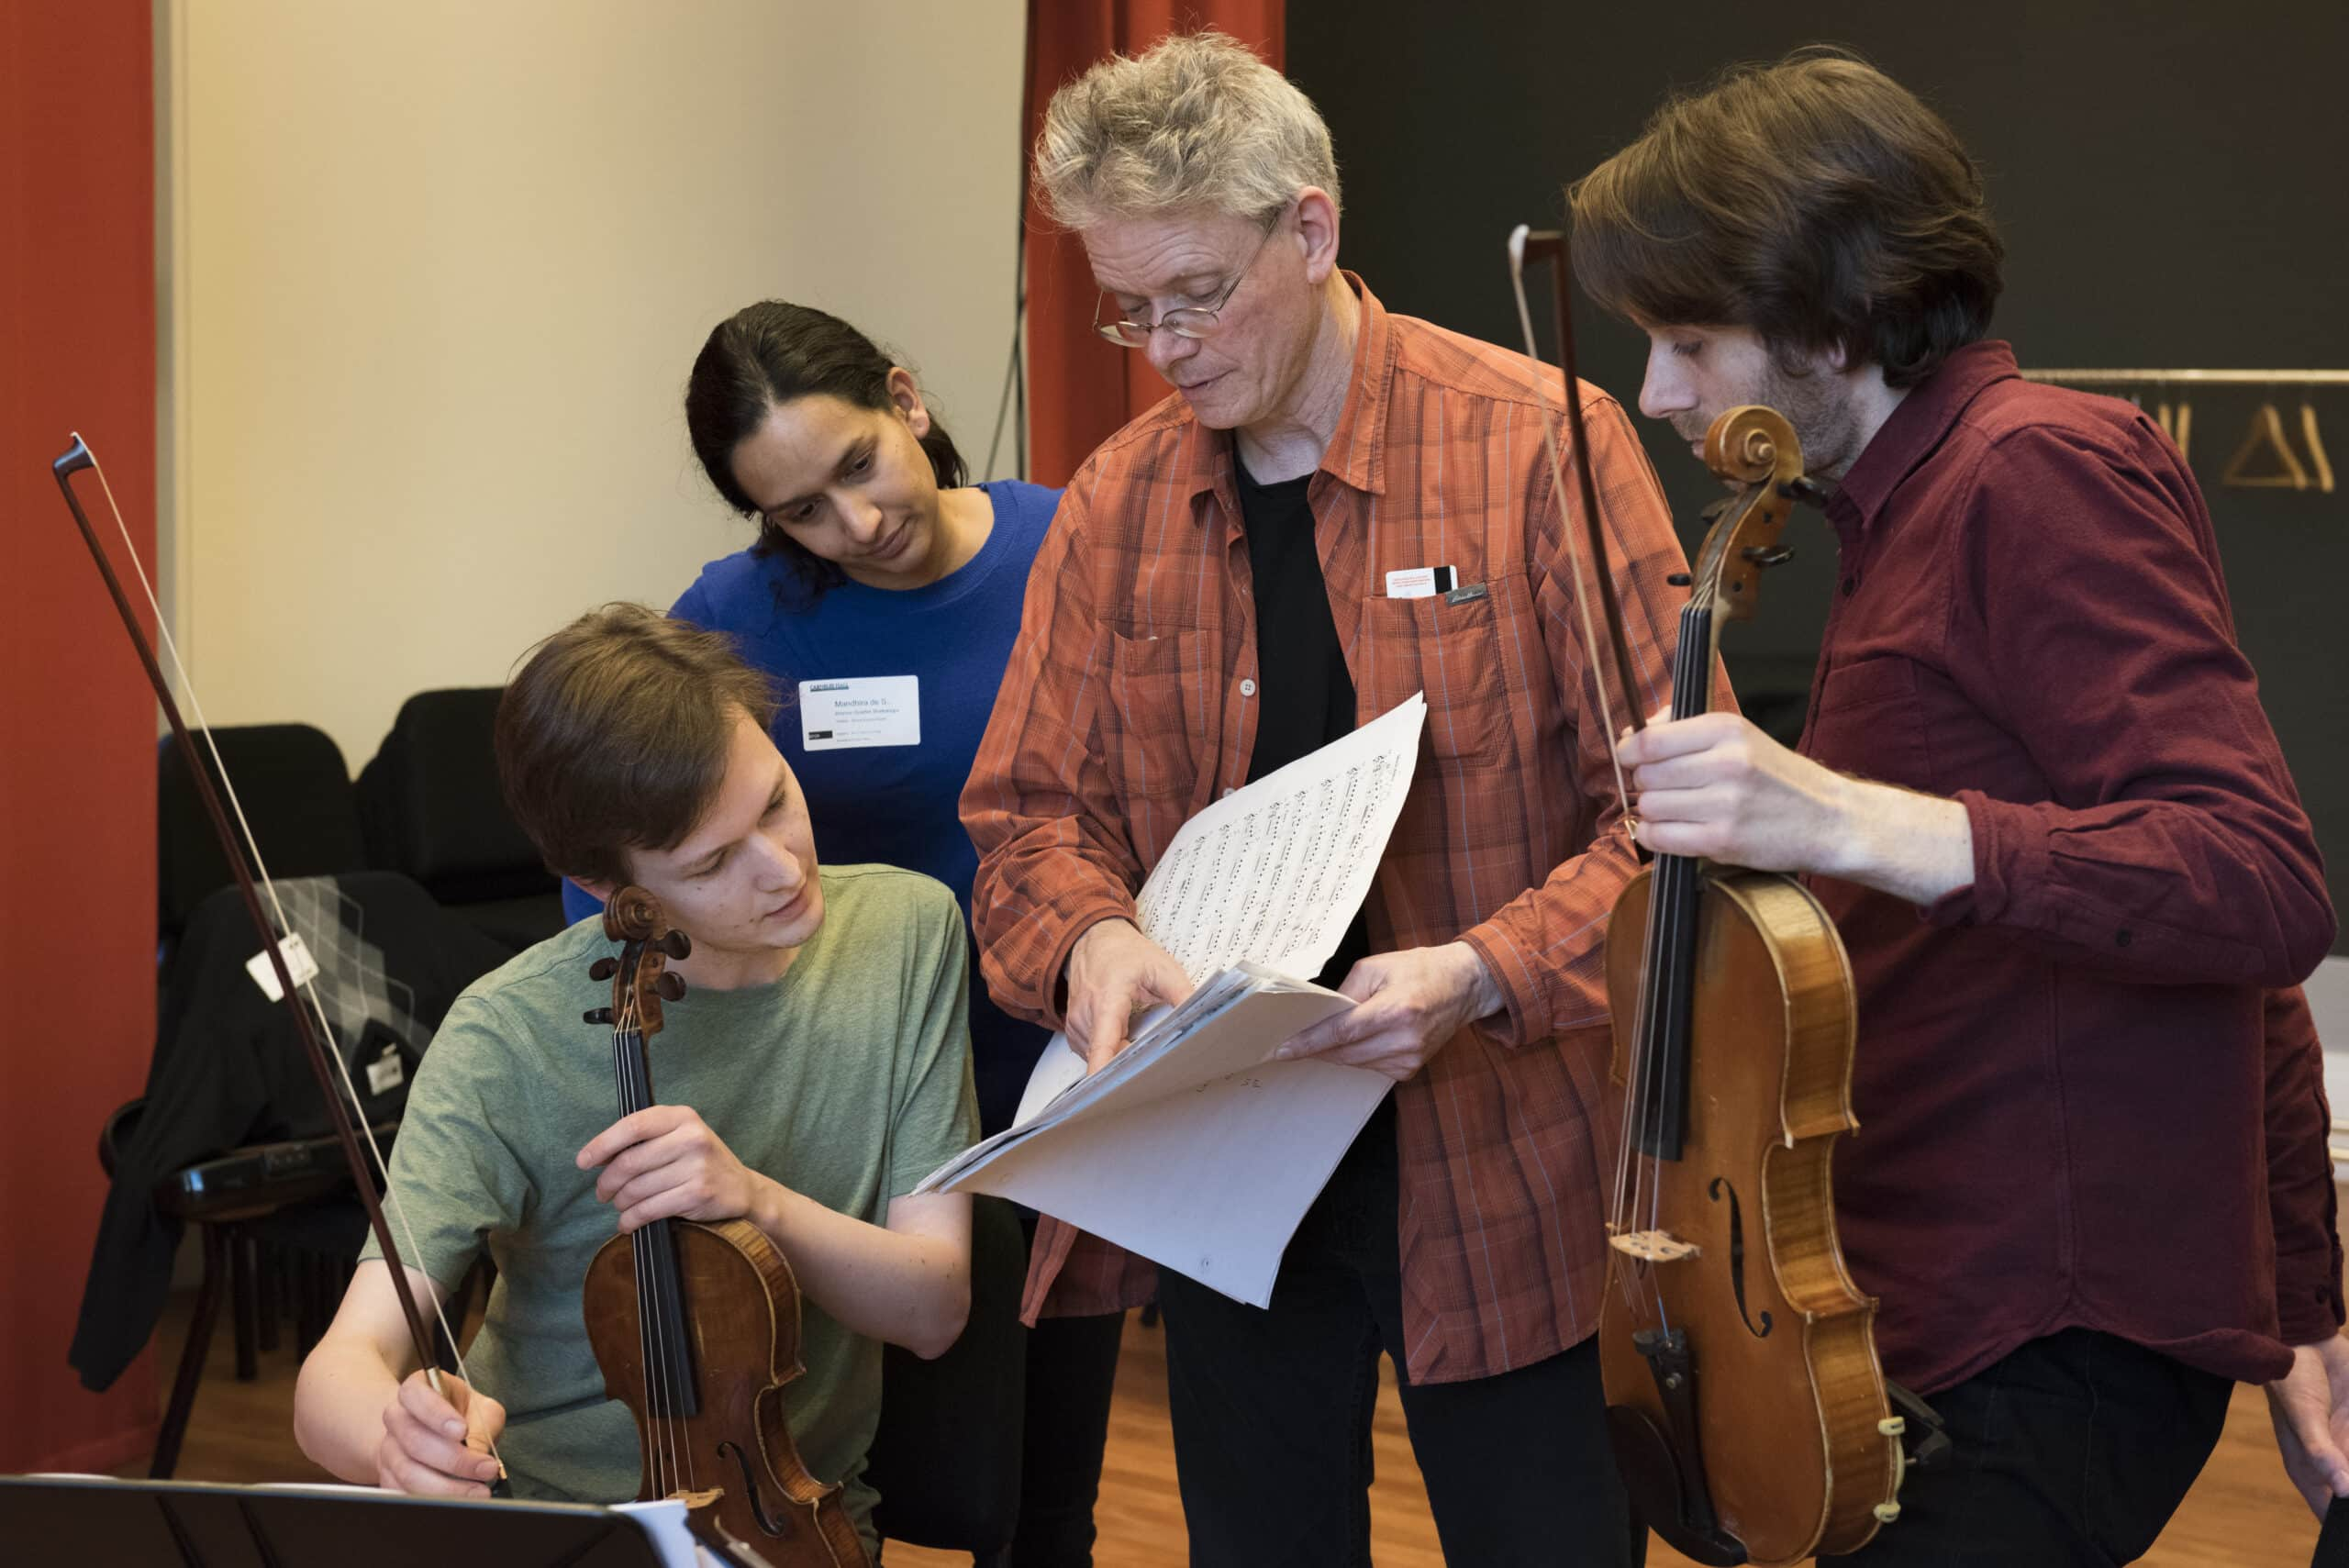 Kronos' David Harrington coaching at Carnegie Hall's Weill Music Institute in 2016, credit Stefan Cohen